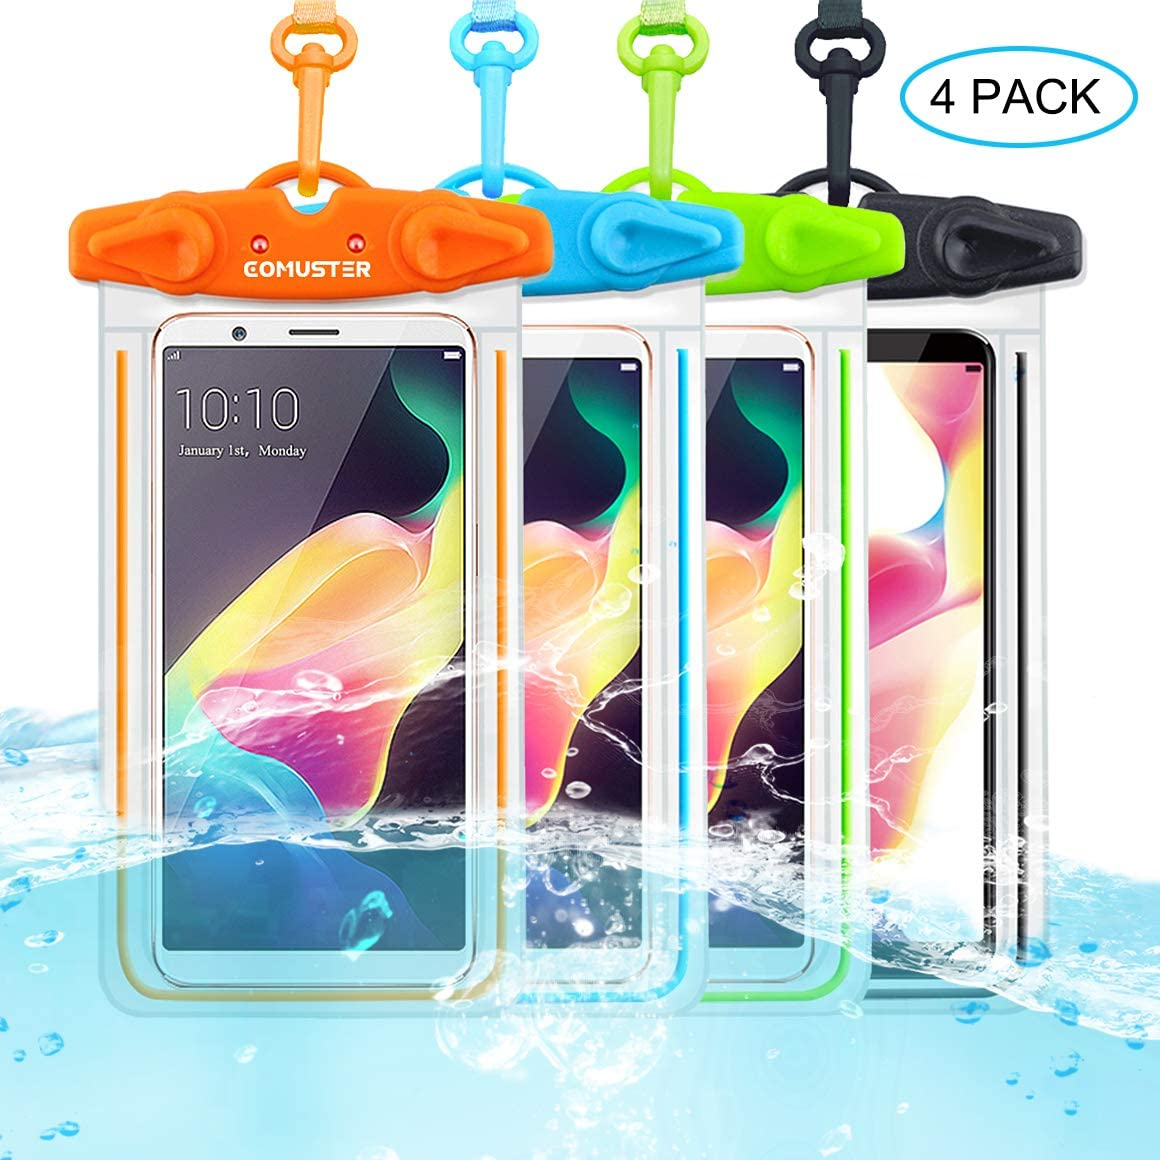 COMUSTER Universal Waterproof Case, 4 Pack IPX8 Underwater Clear Phone Pouch Dry Case Compatible with iPhone 11 Pro Xs Max XR X 8 8P Galaxy Pixel up to 6.5